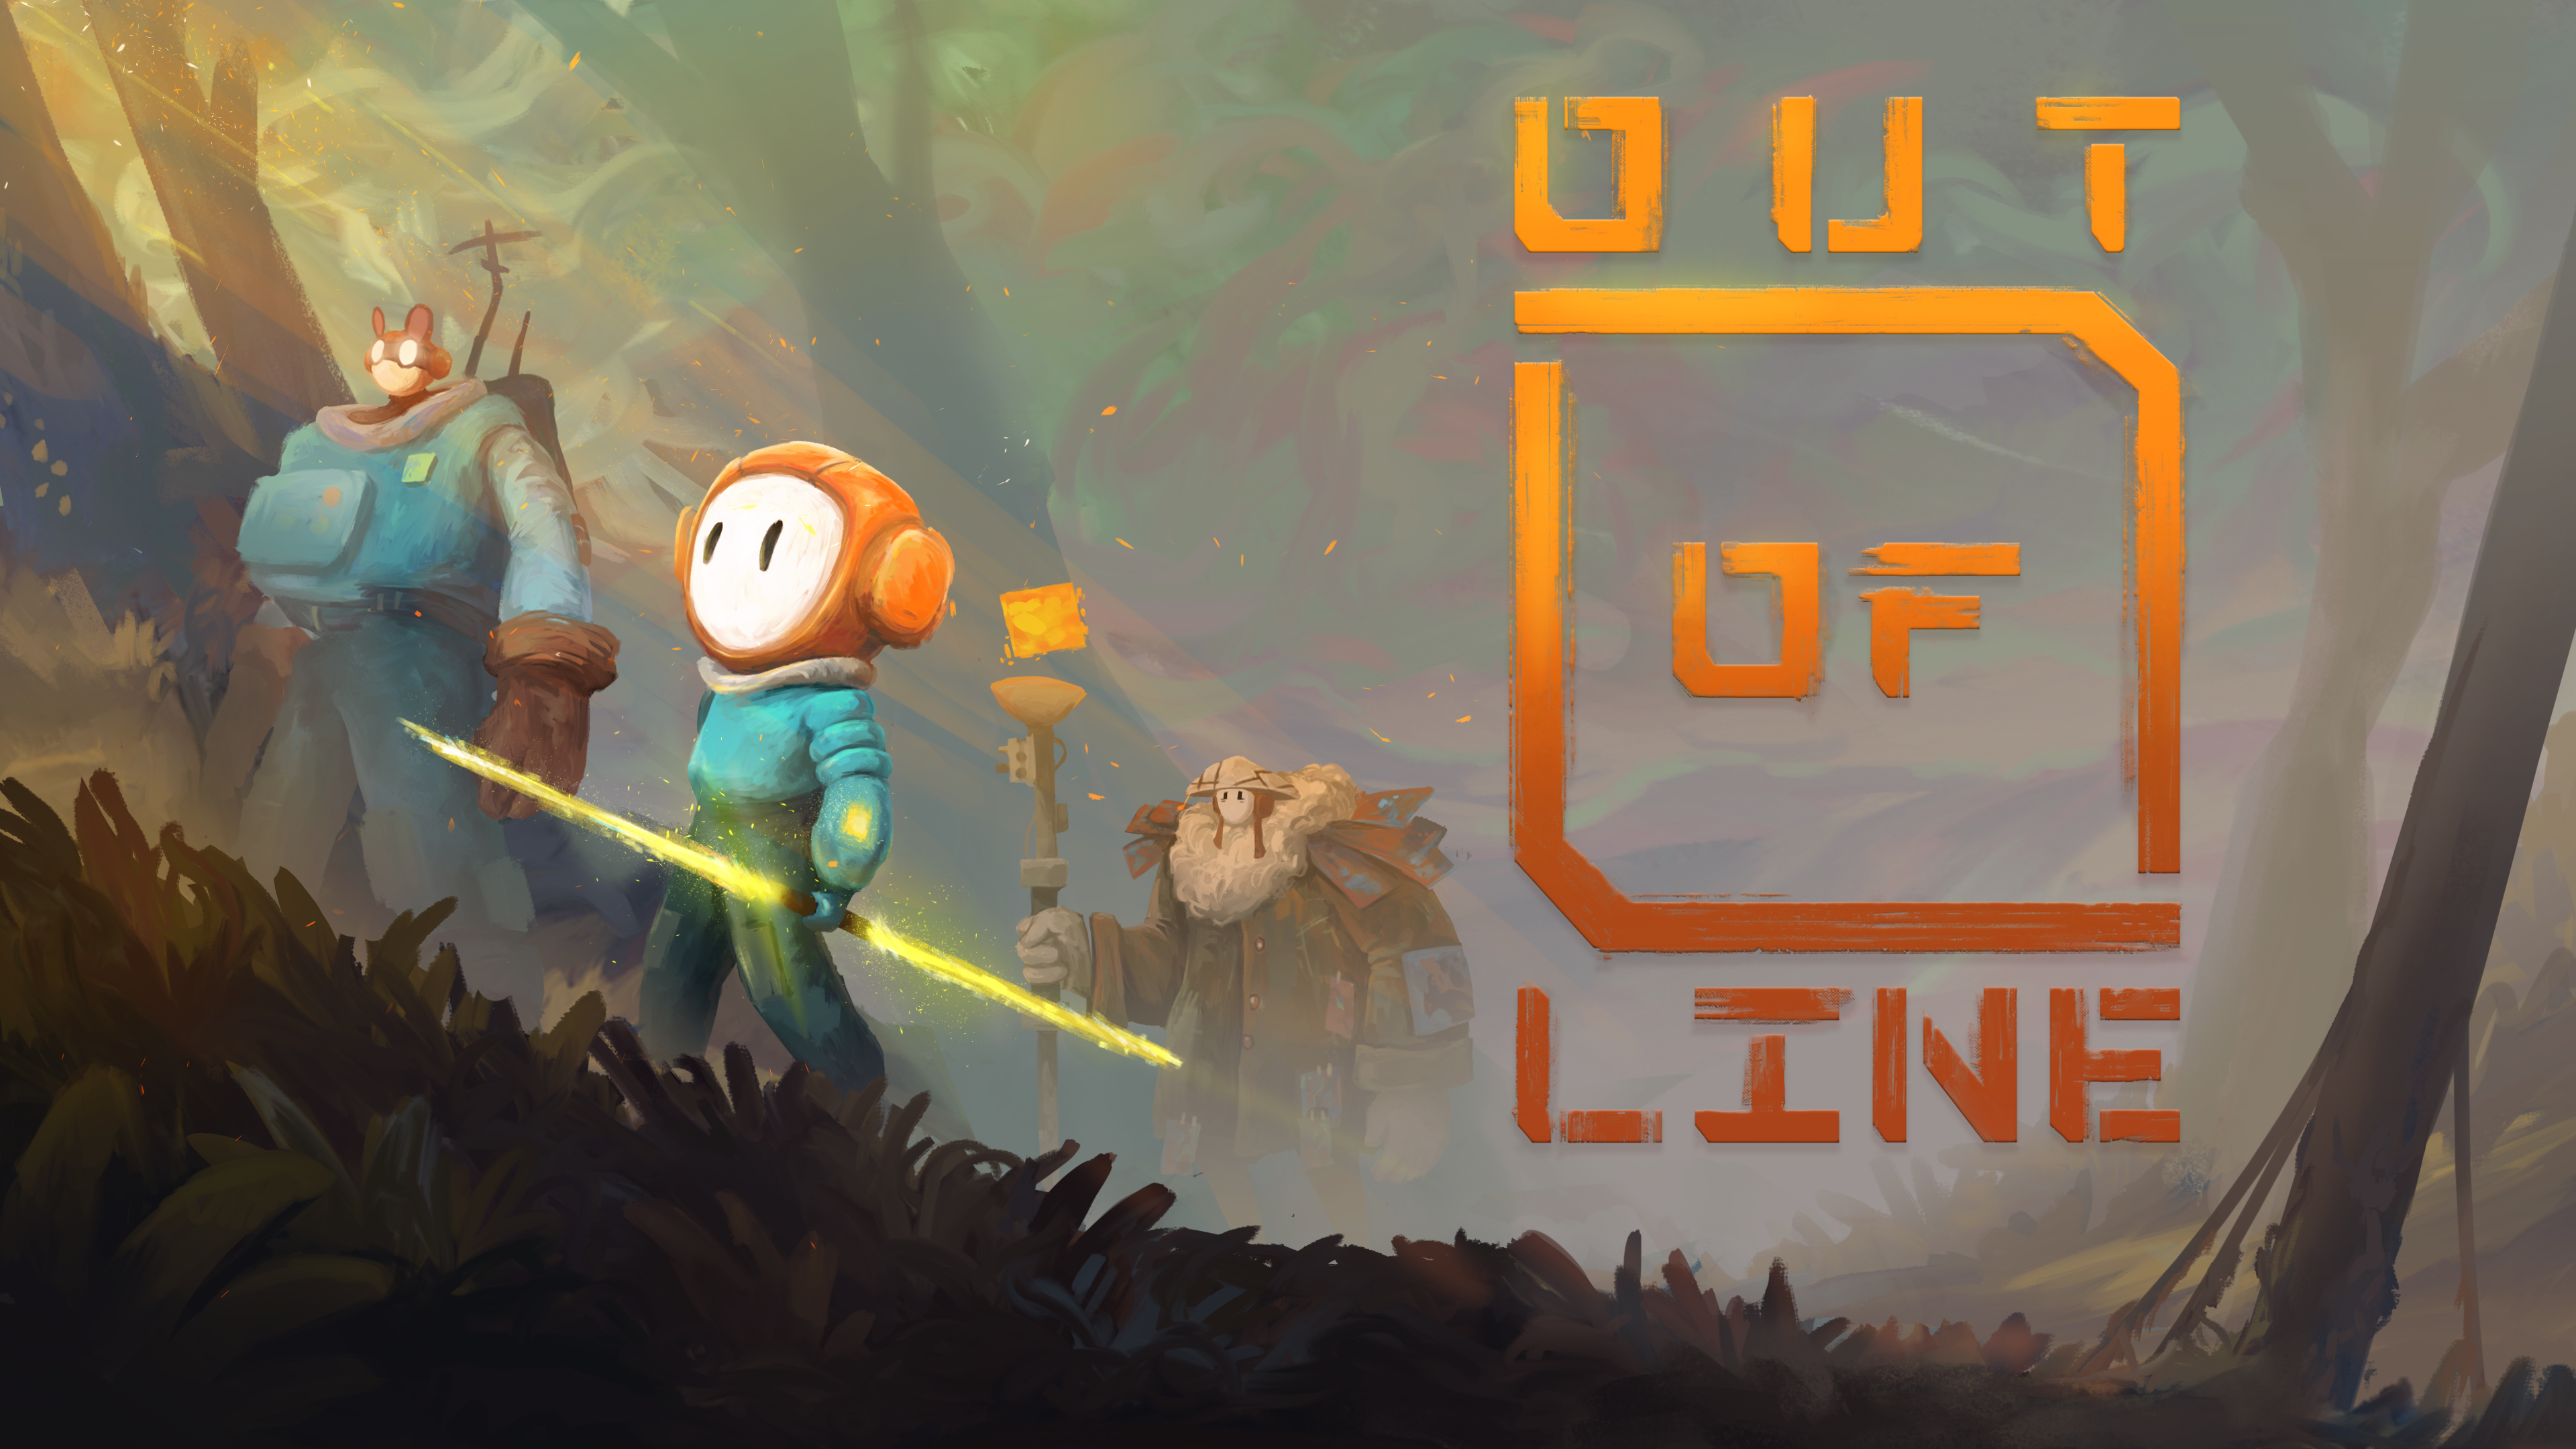 Out of Line received a trailer